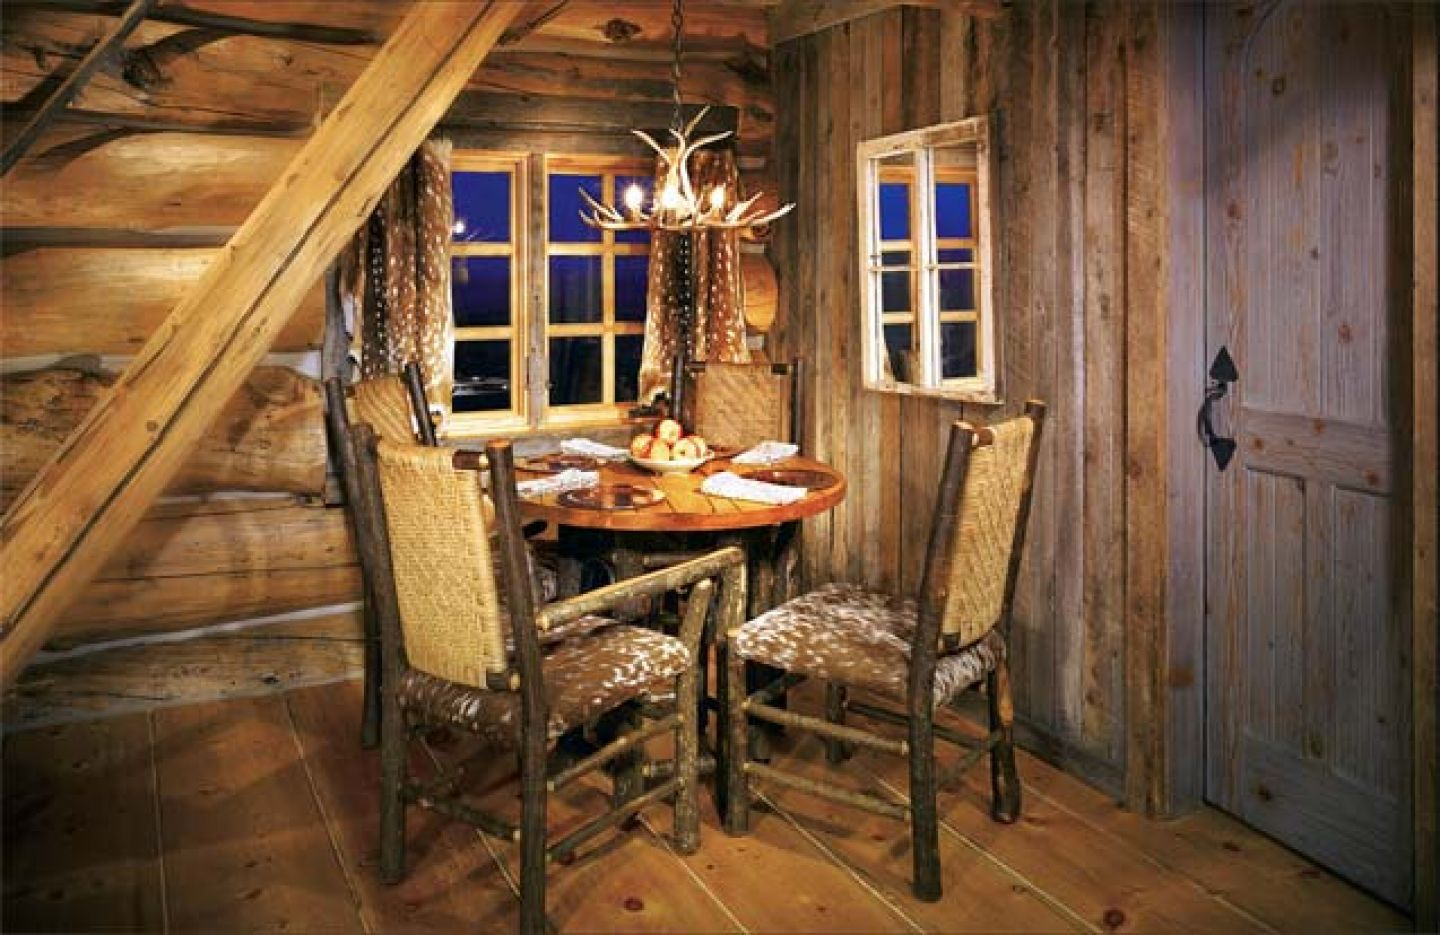 Small Room With Rustic Interior Design of Table and Chair